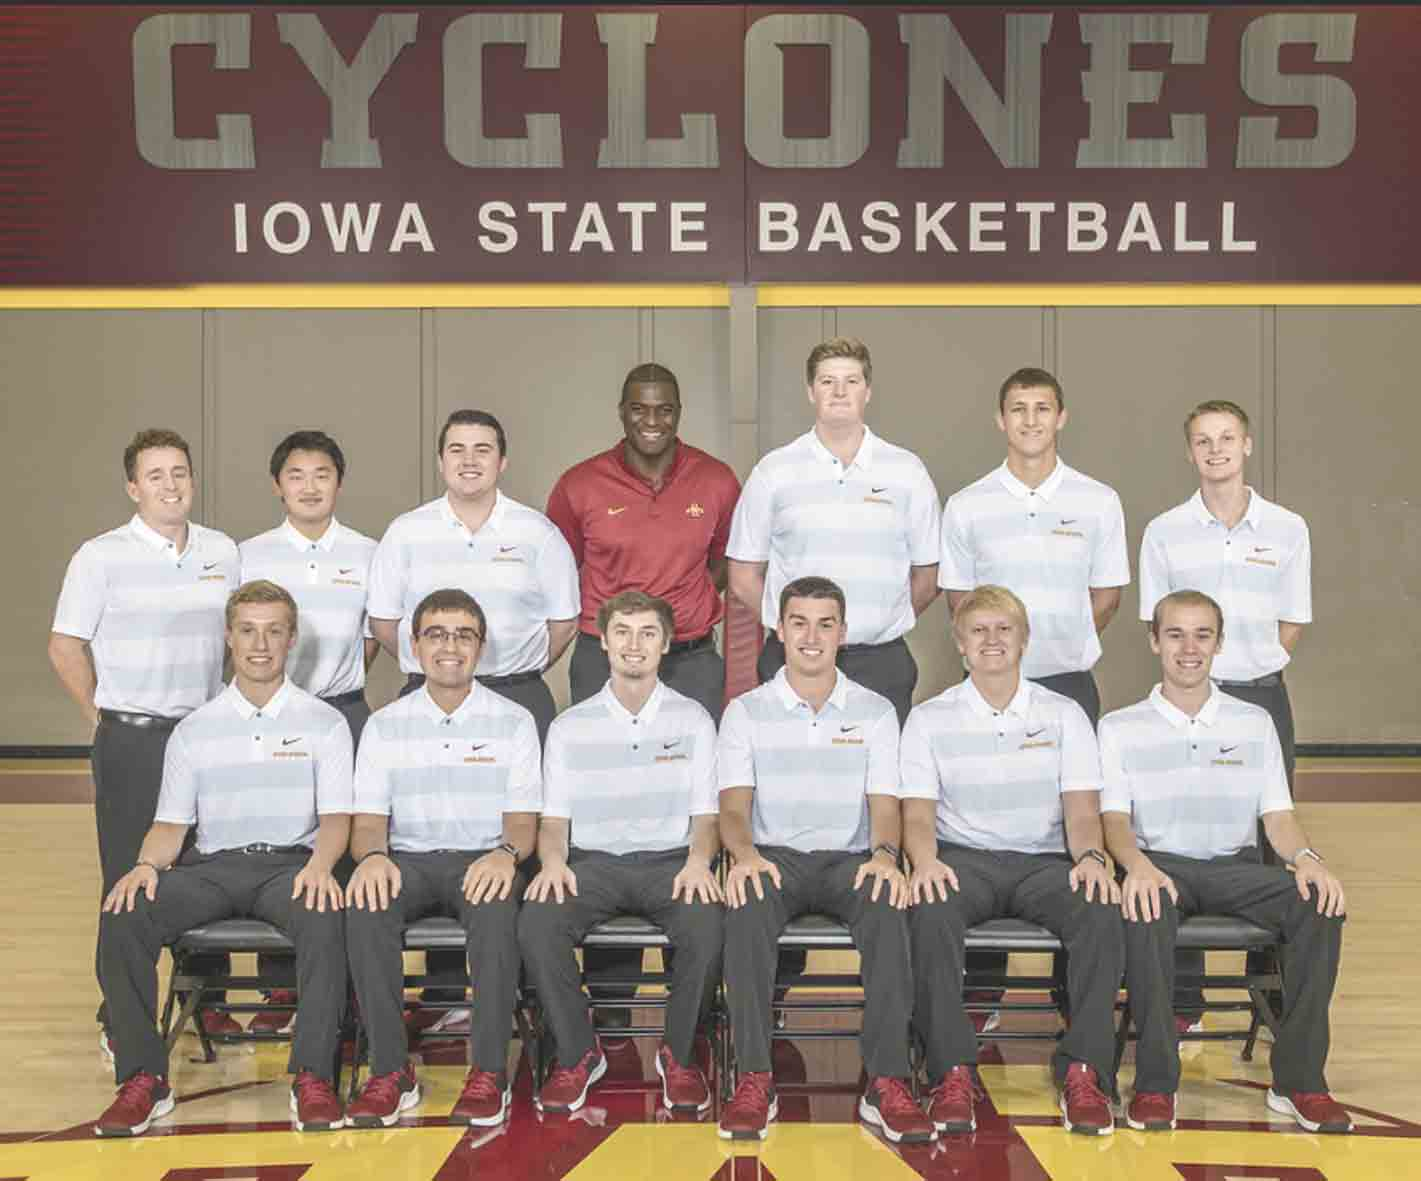 This winter, South Winneshiek alum Joel Hanson (back row, far right) joined the team of managers for the Iowa State Cyclones men's basketball team. The sophomore student, who is also a lifelong fan of the 'Clones, joins the team and coaches at every single practice and home game...